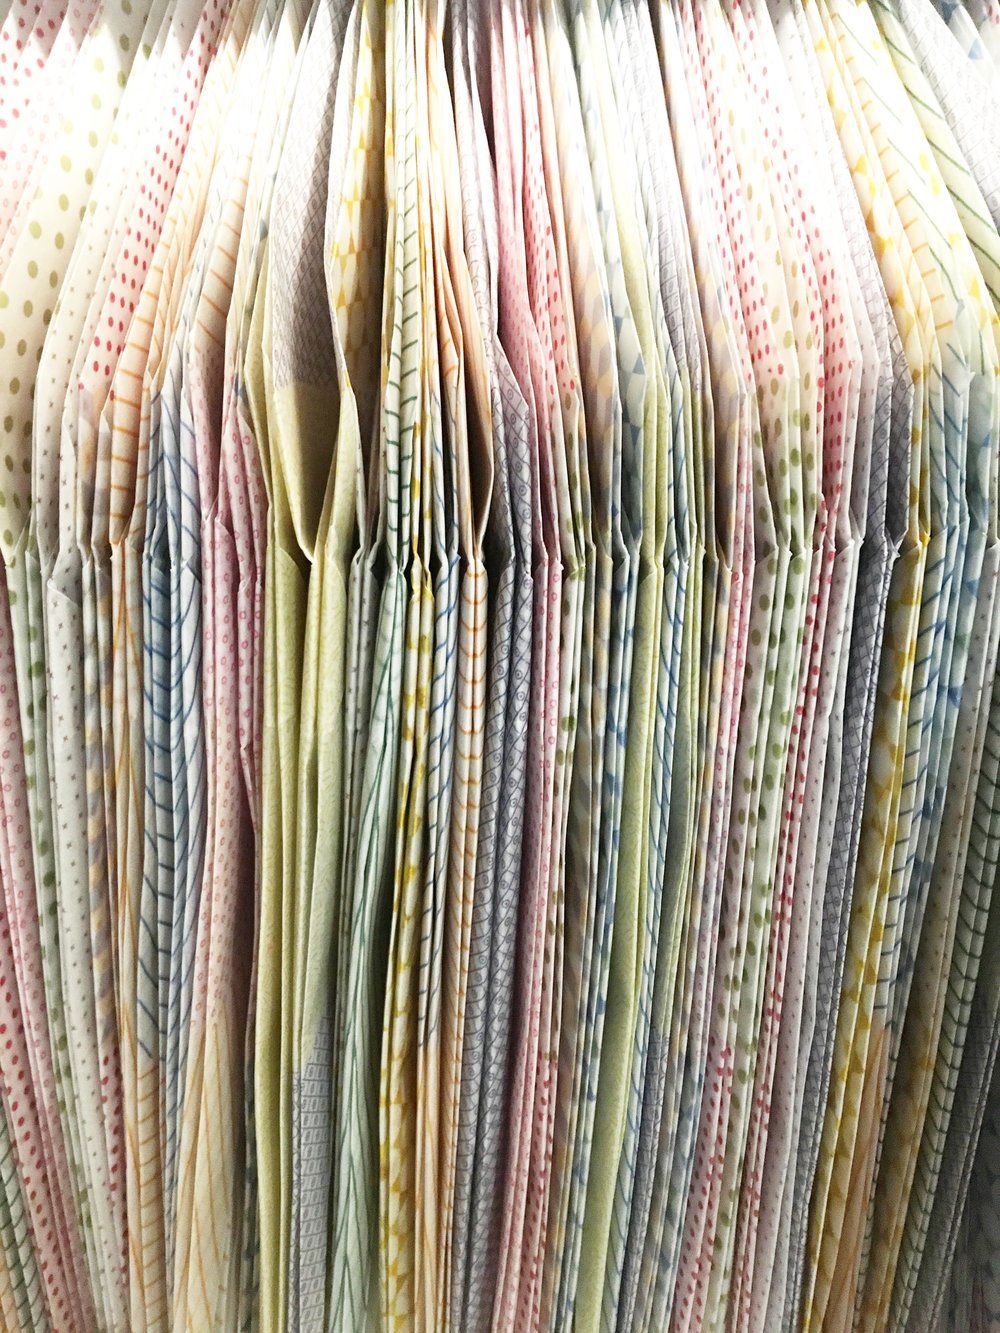 Bolter Design origami installation design